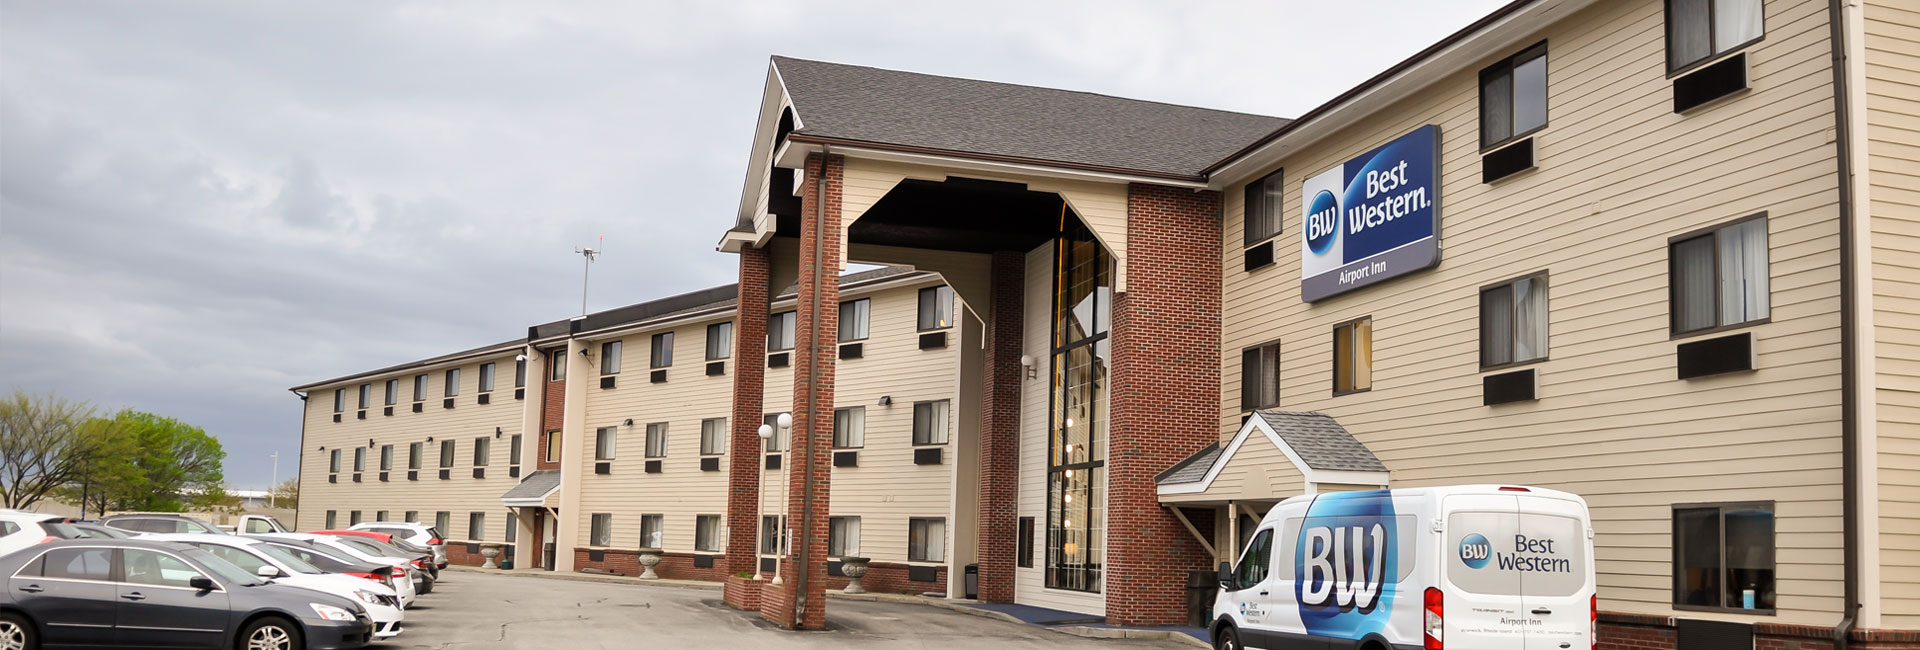 Location of Hotel Best Western Airport Inn, Warwick